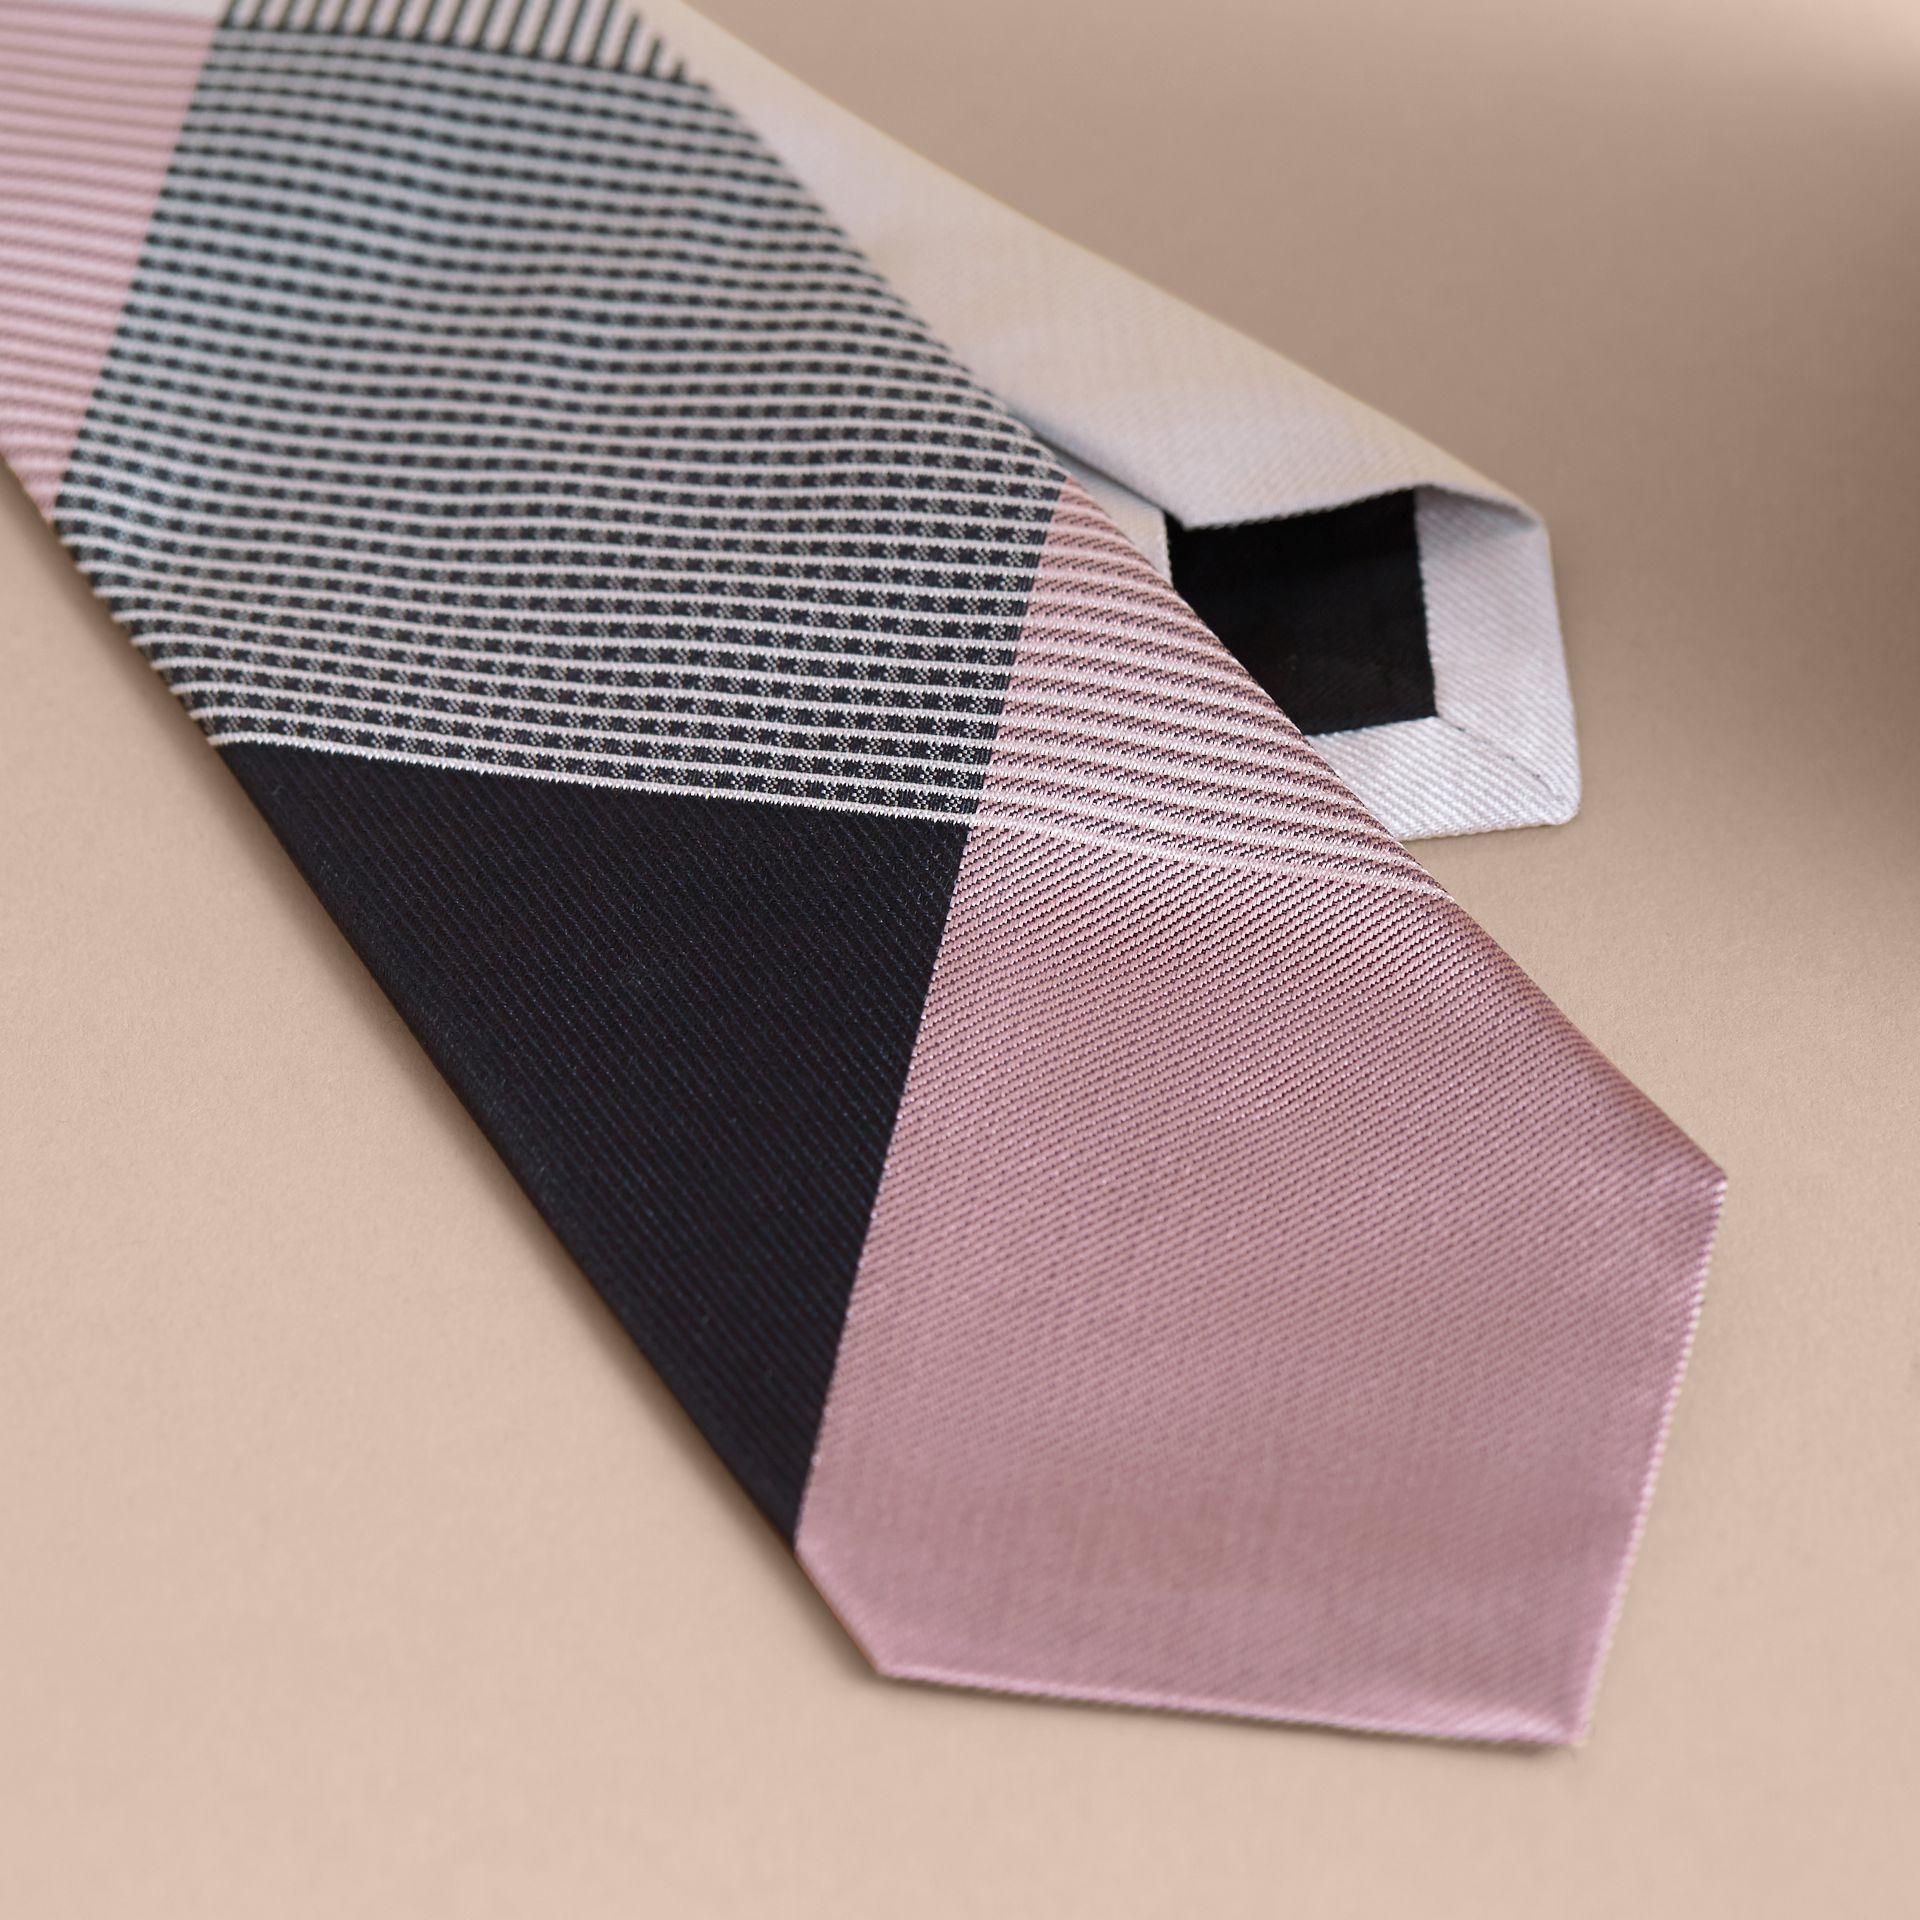 Modern Cut Gingham Check Silk Jacquard Tie in Apricot Pink - Men | Burberry - gallery image 2